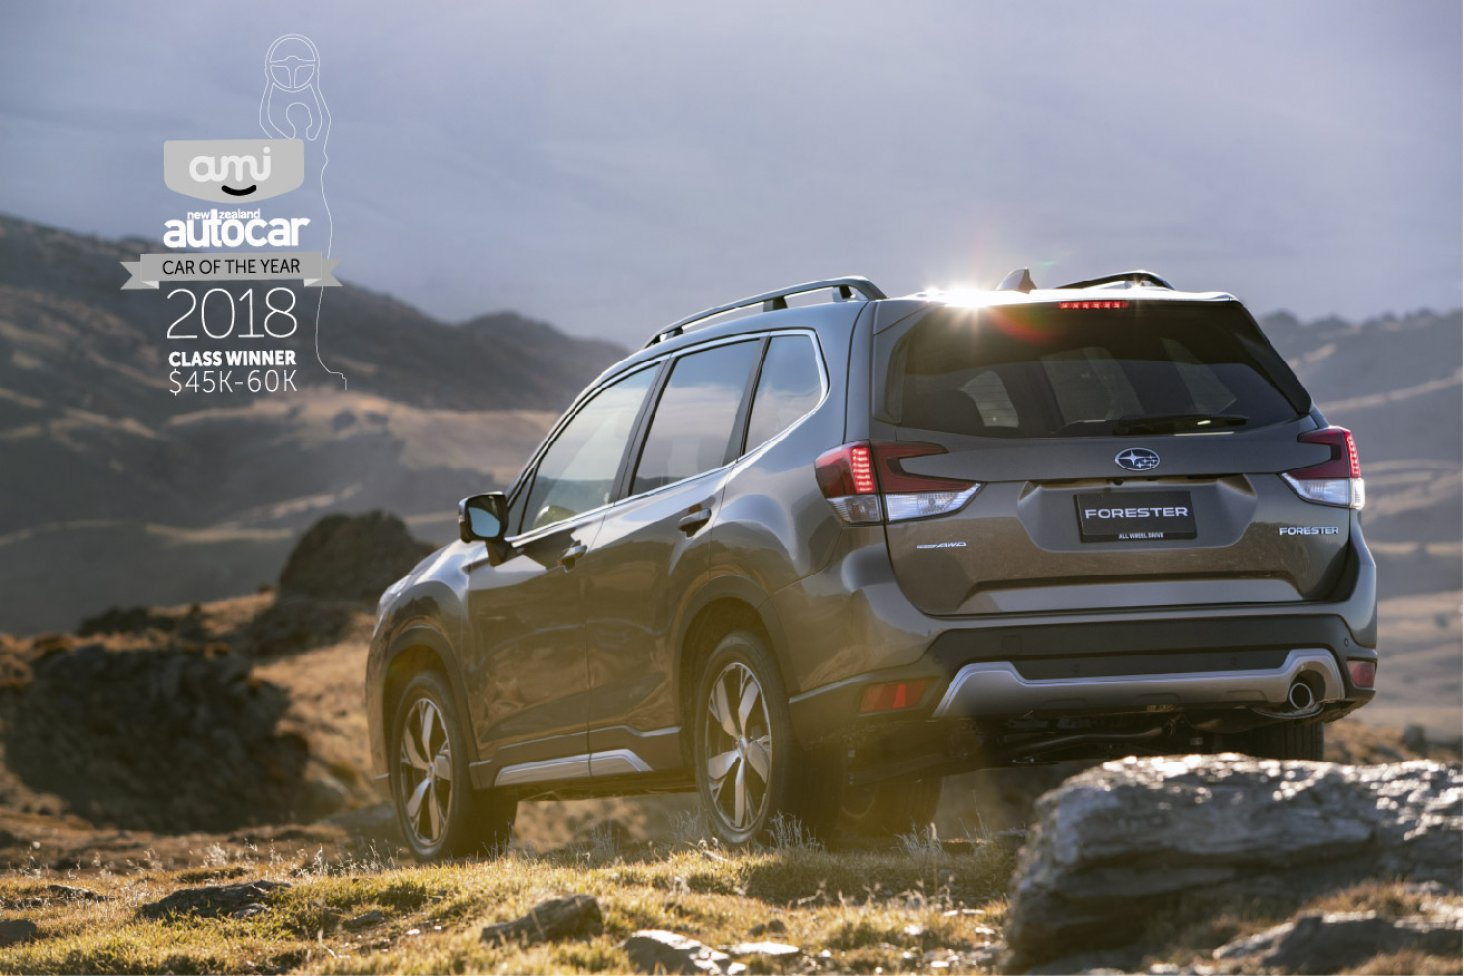 The Subaru Forester Premium has been awarded the AMI NZ Autocar Car of the Year $45-60K category.